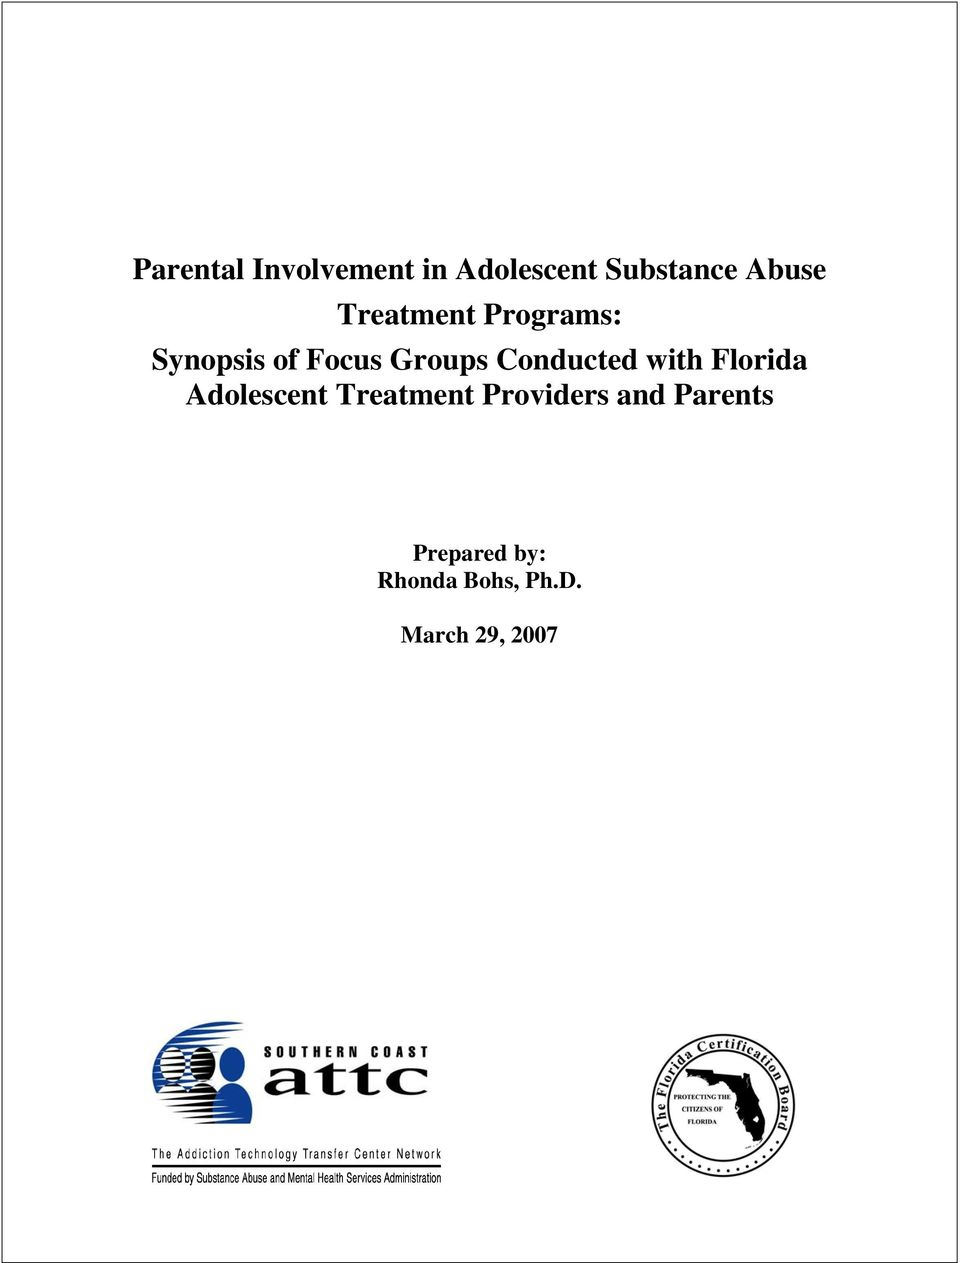 Conducted with Florida Adolescent Treatment